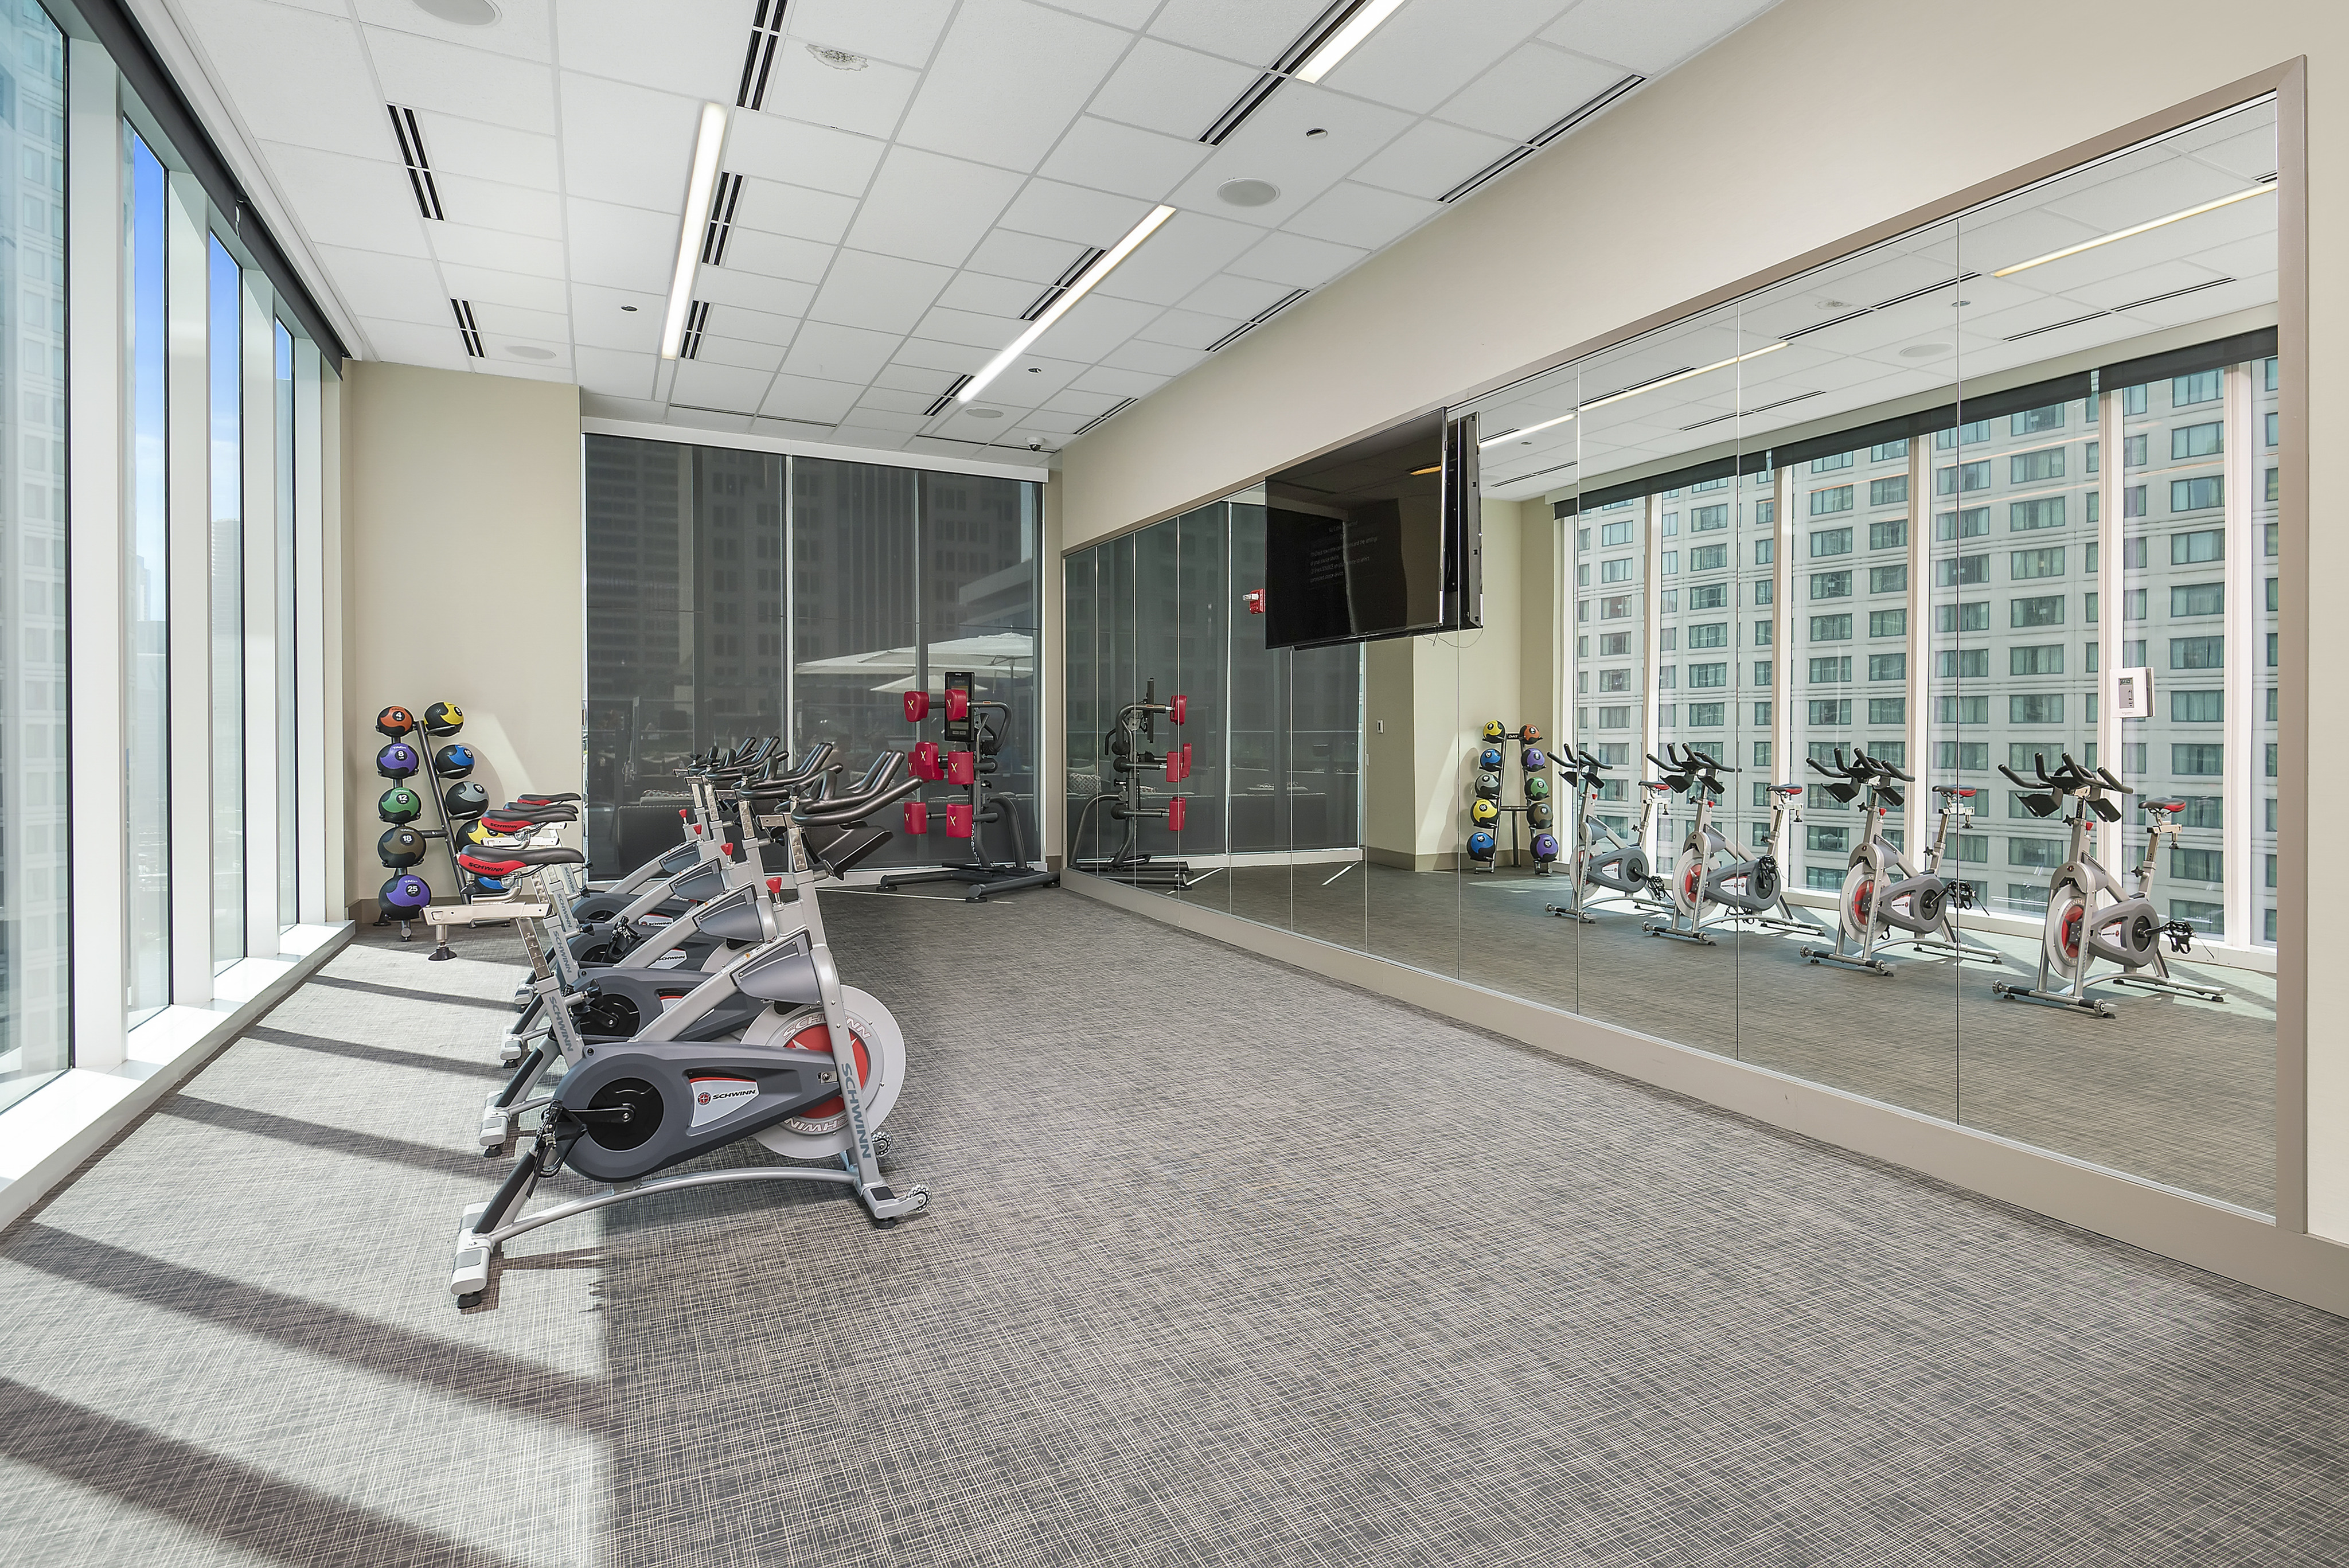 Fitness center with stationary bikes, mirrors and a flat-screen TV